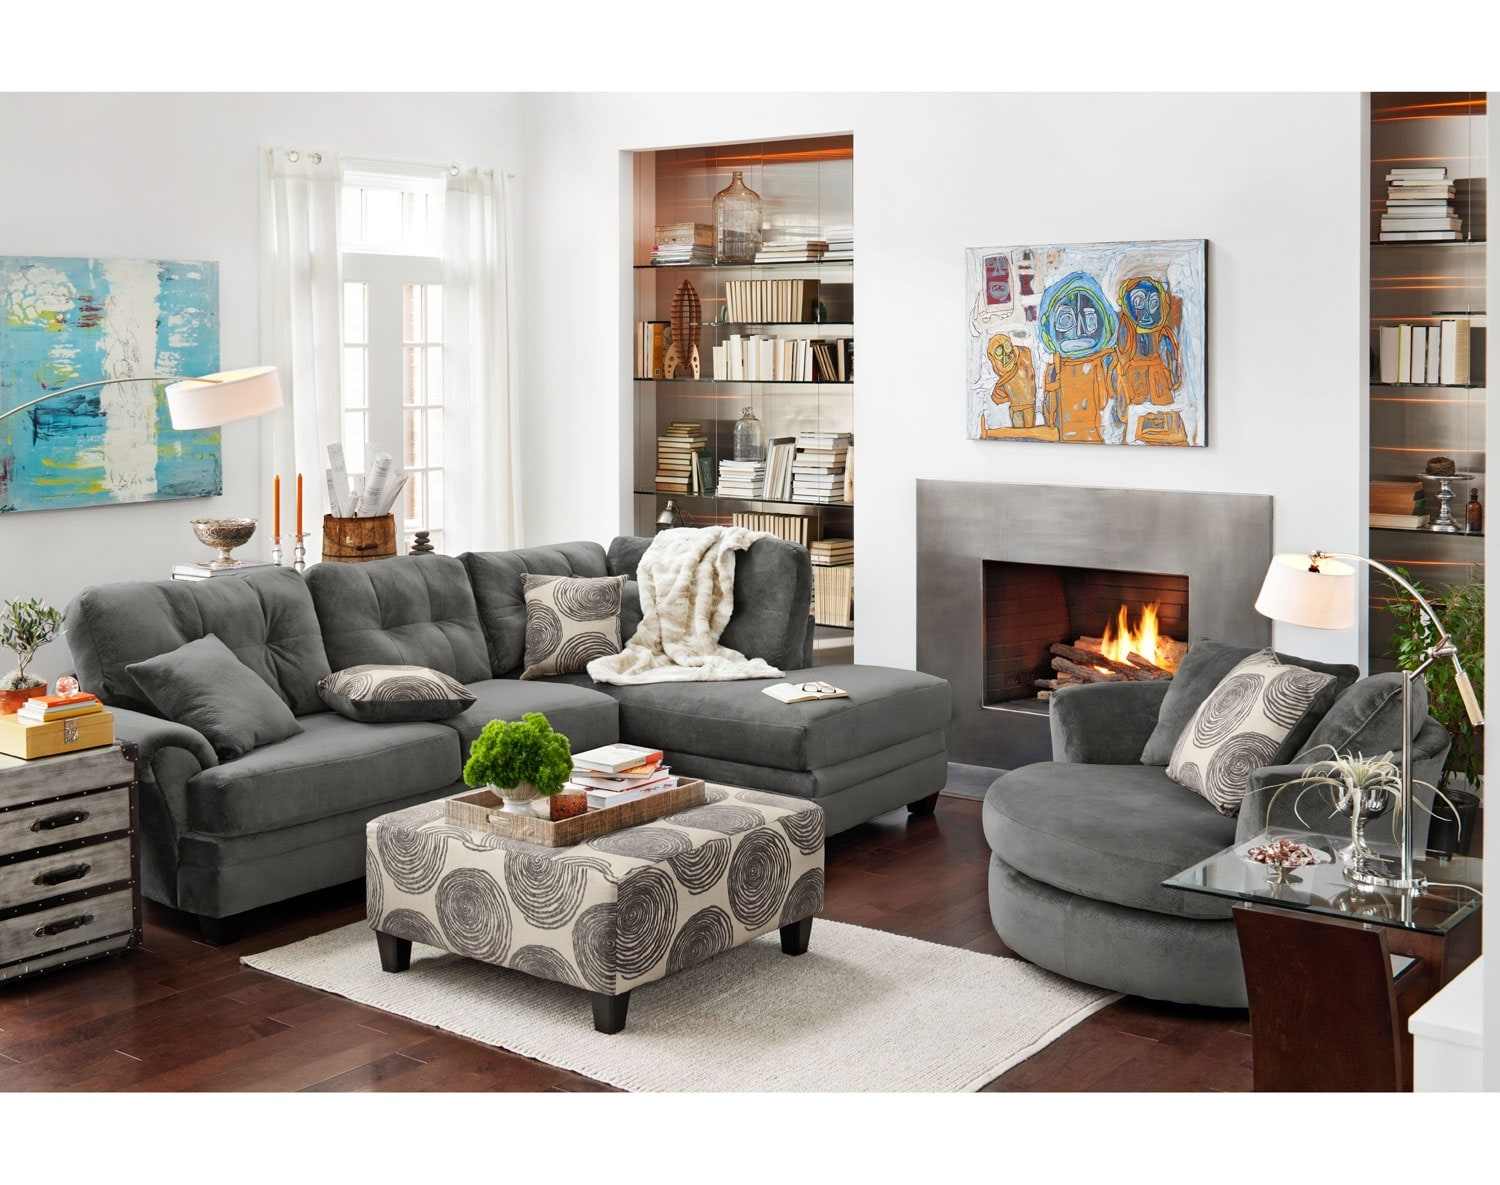 awesome furniture luxury ideas clearance city home of design and center sectionals lbfa sectional value bedroom